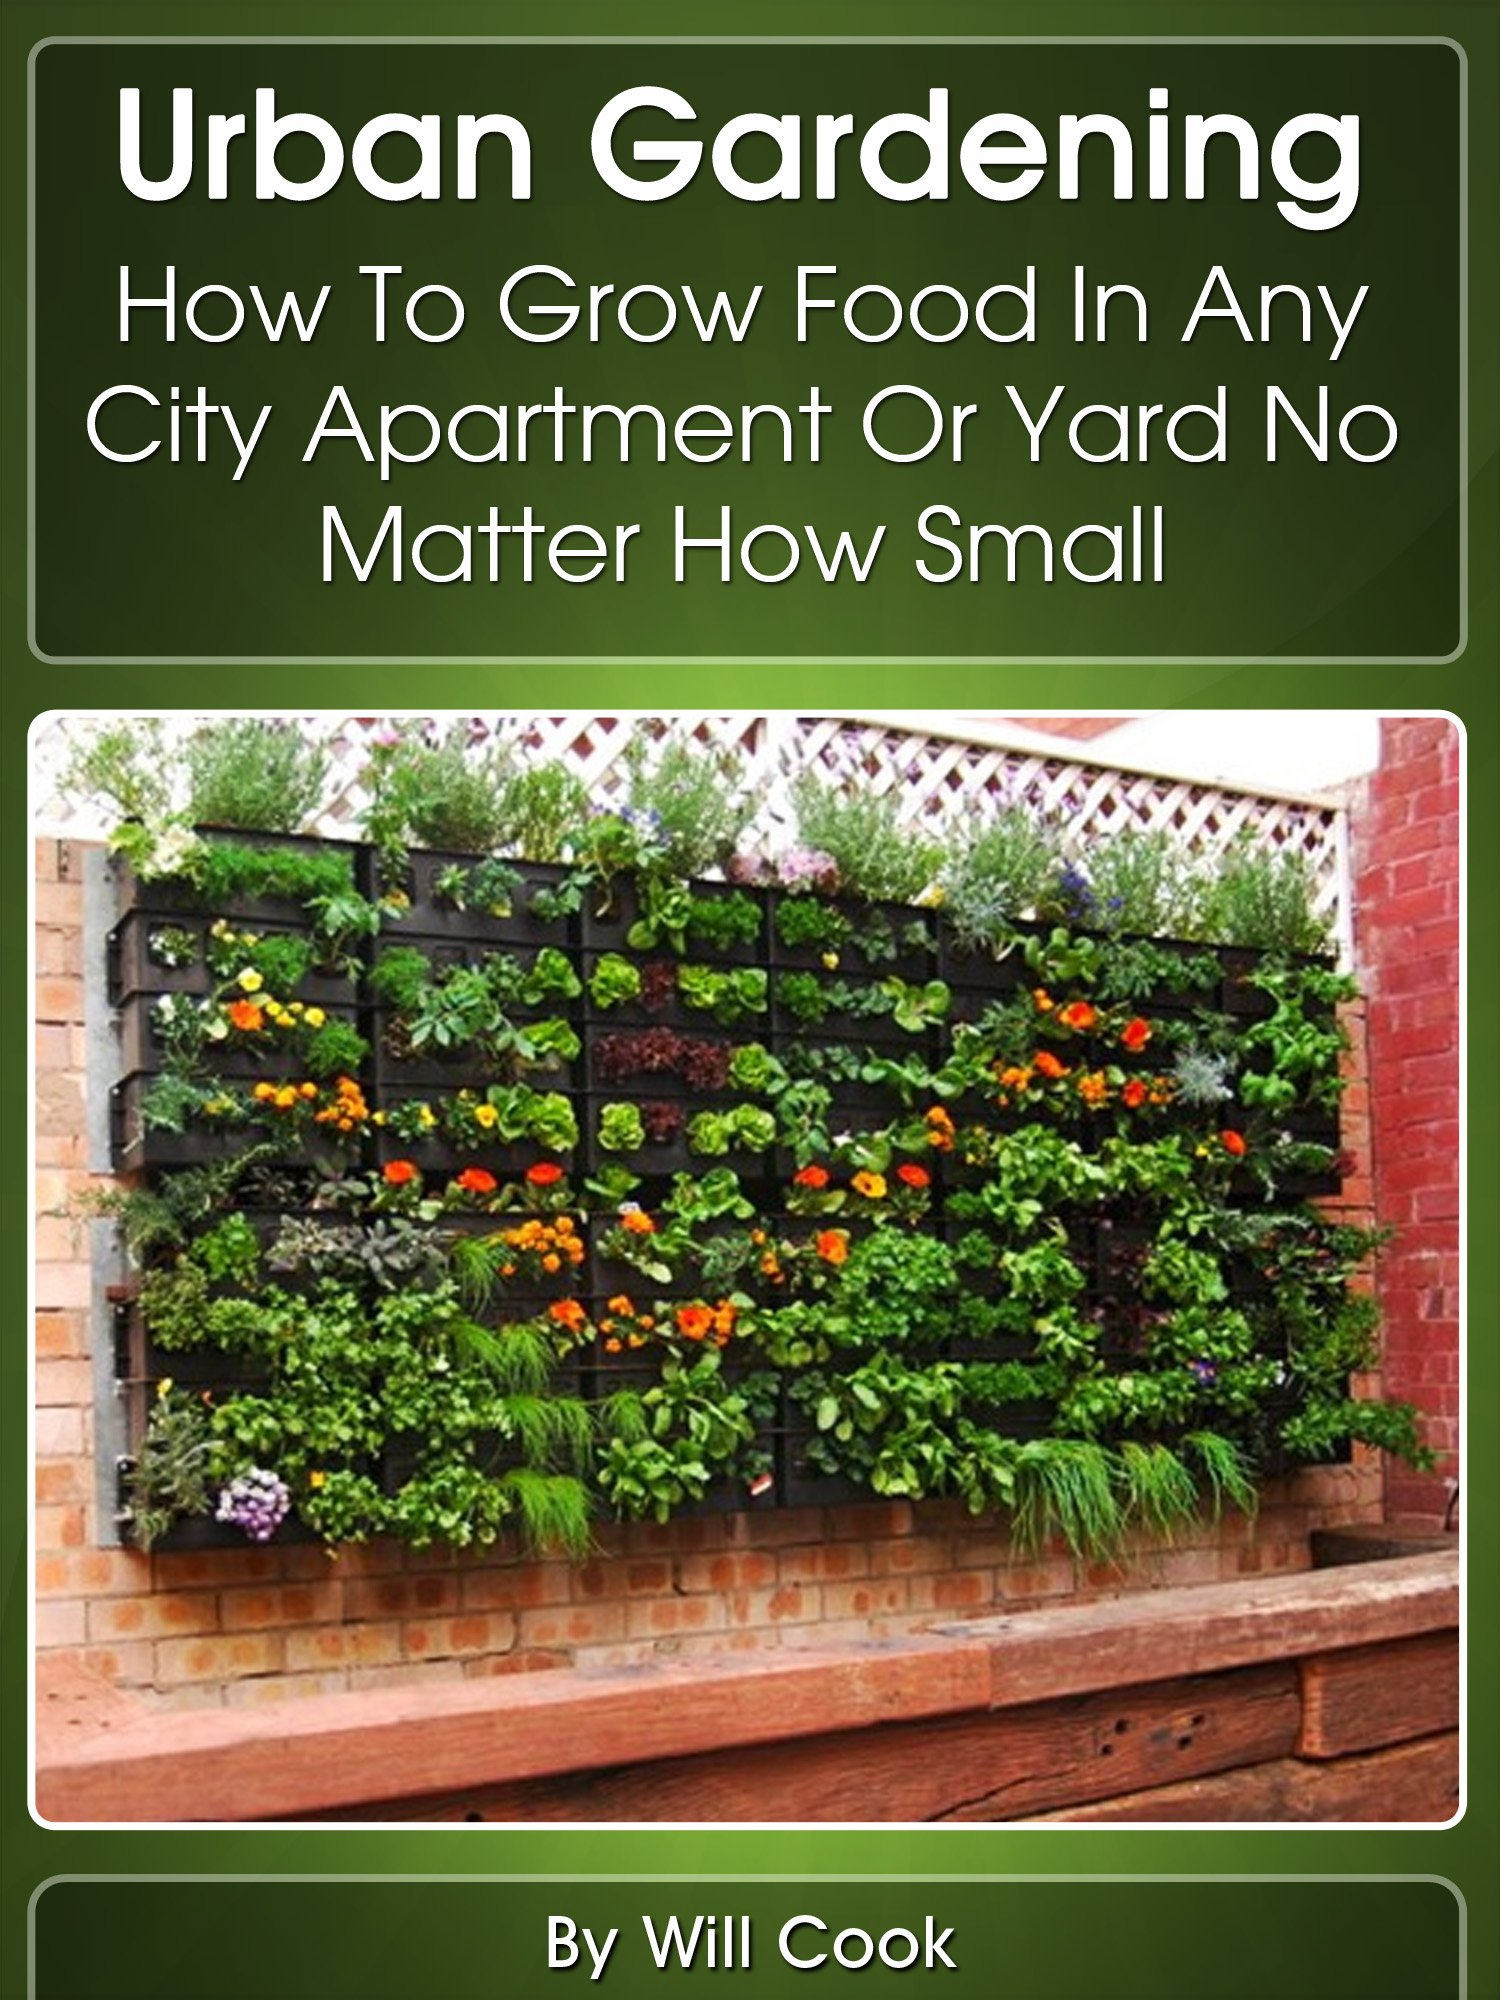 Urban Gardening  How To Grow Food In Any City Apartment Or Yard No Matter How Small  Growing Indoors On Rooftop Small Yards Balcony Gardens Planting ... Guidebook Book 1   English Edition